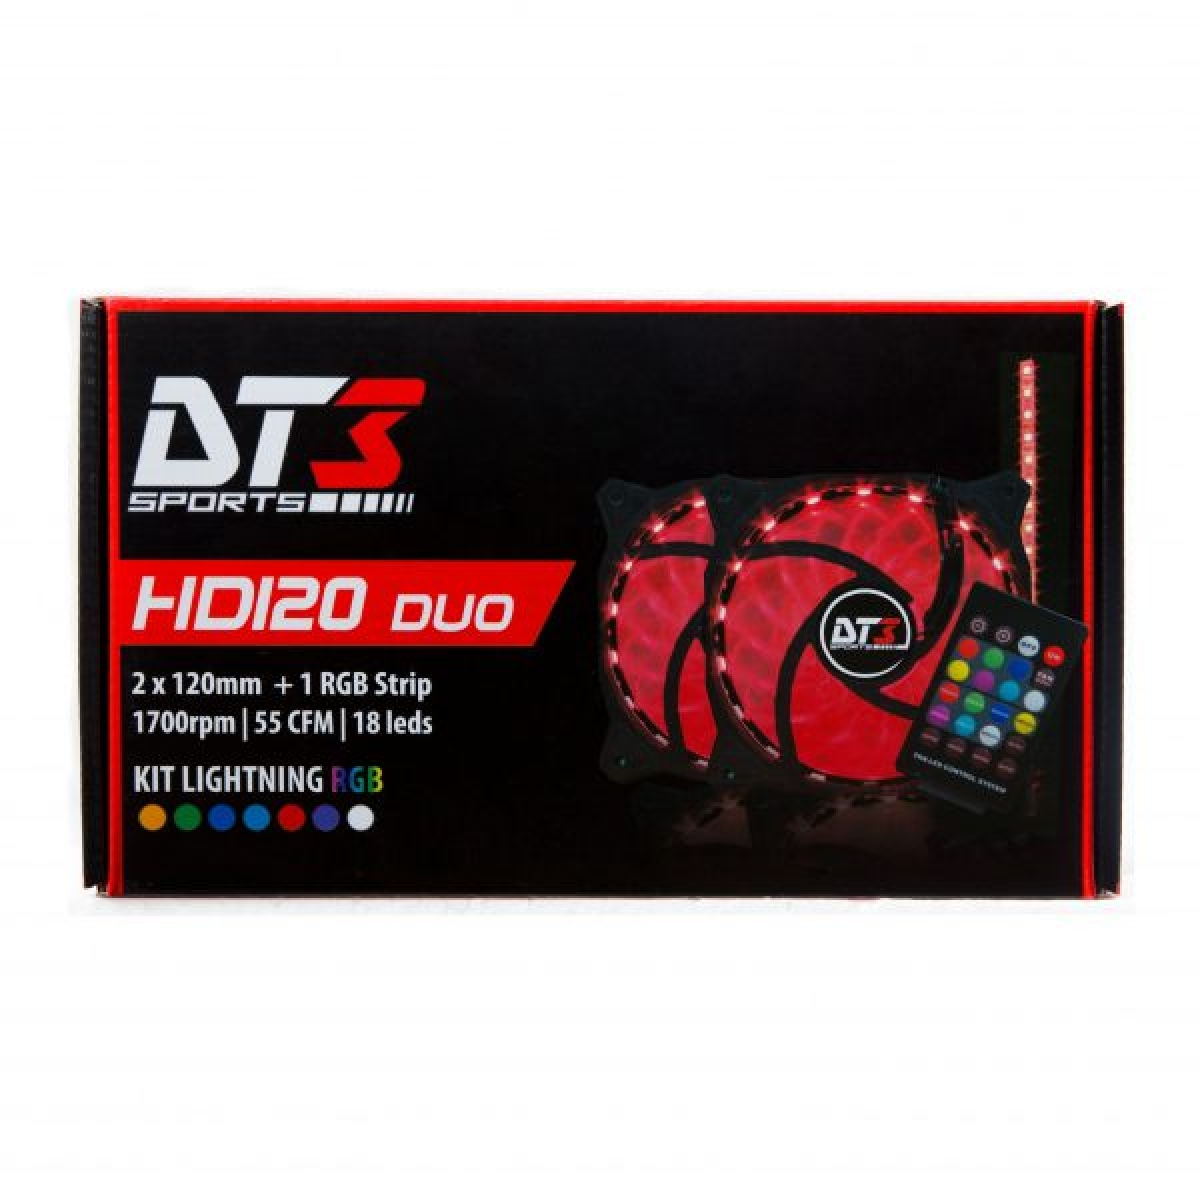 Cooler para Gabinete DT3 SPORTS HD120 DUO RGB LED com Controle Remoto 120mm